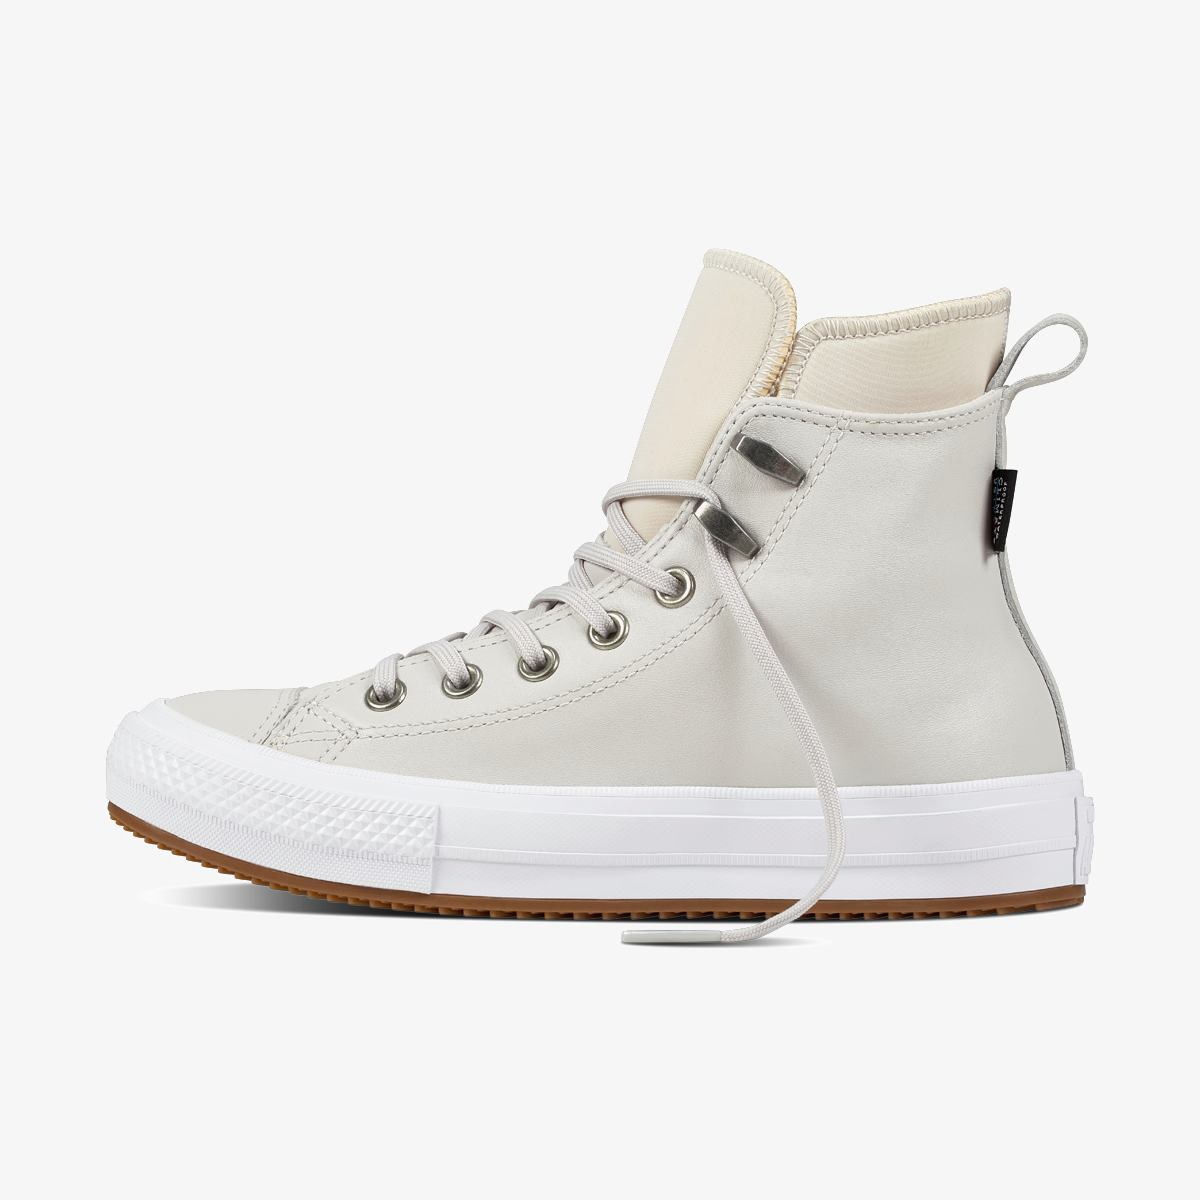 Кеды Converse CHUCK TAYLOR ALL STAR WATERPROOF BOOT LEATHER HIGH TOP